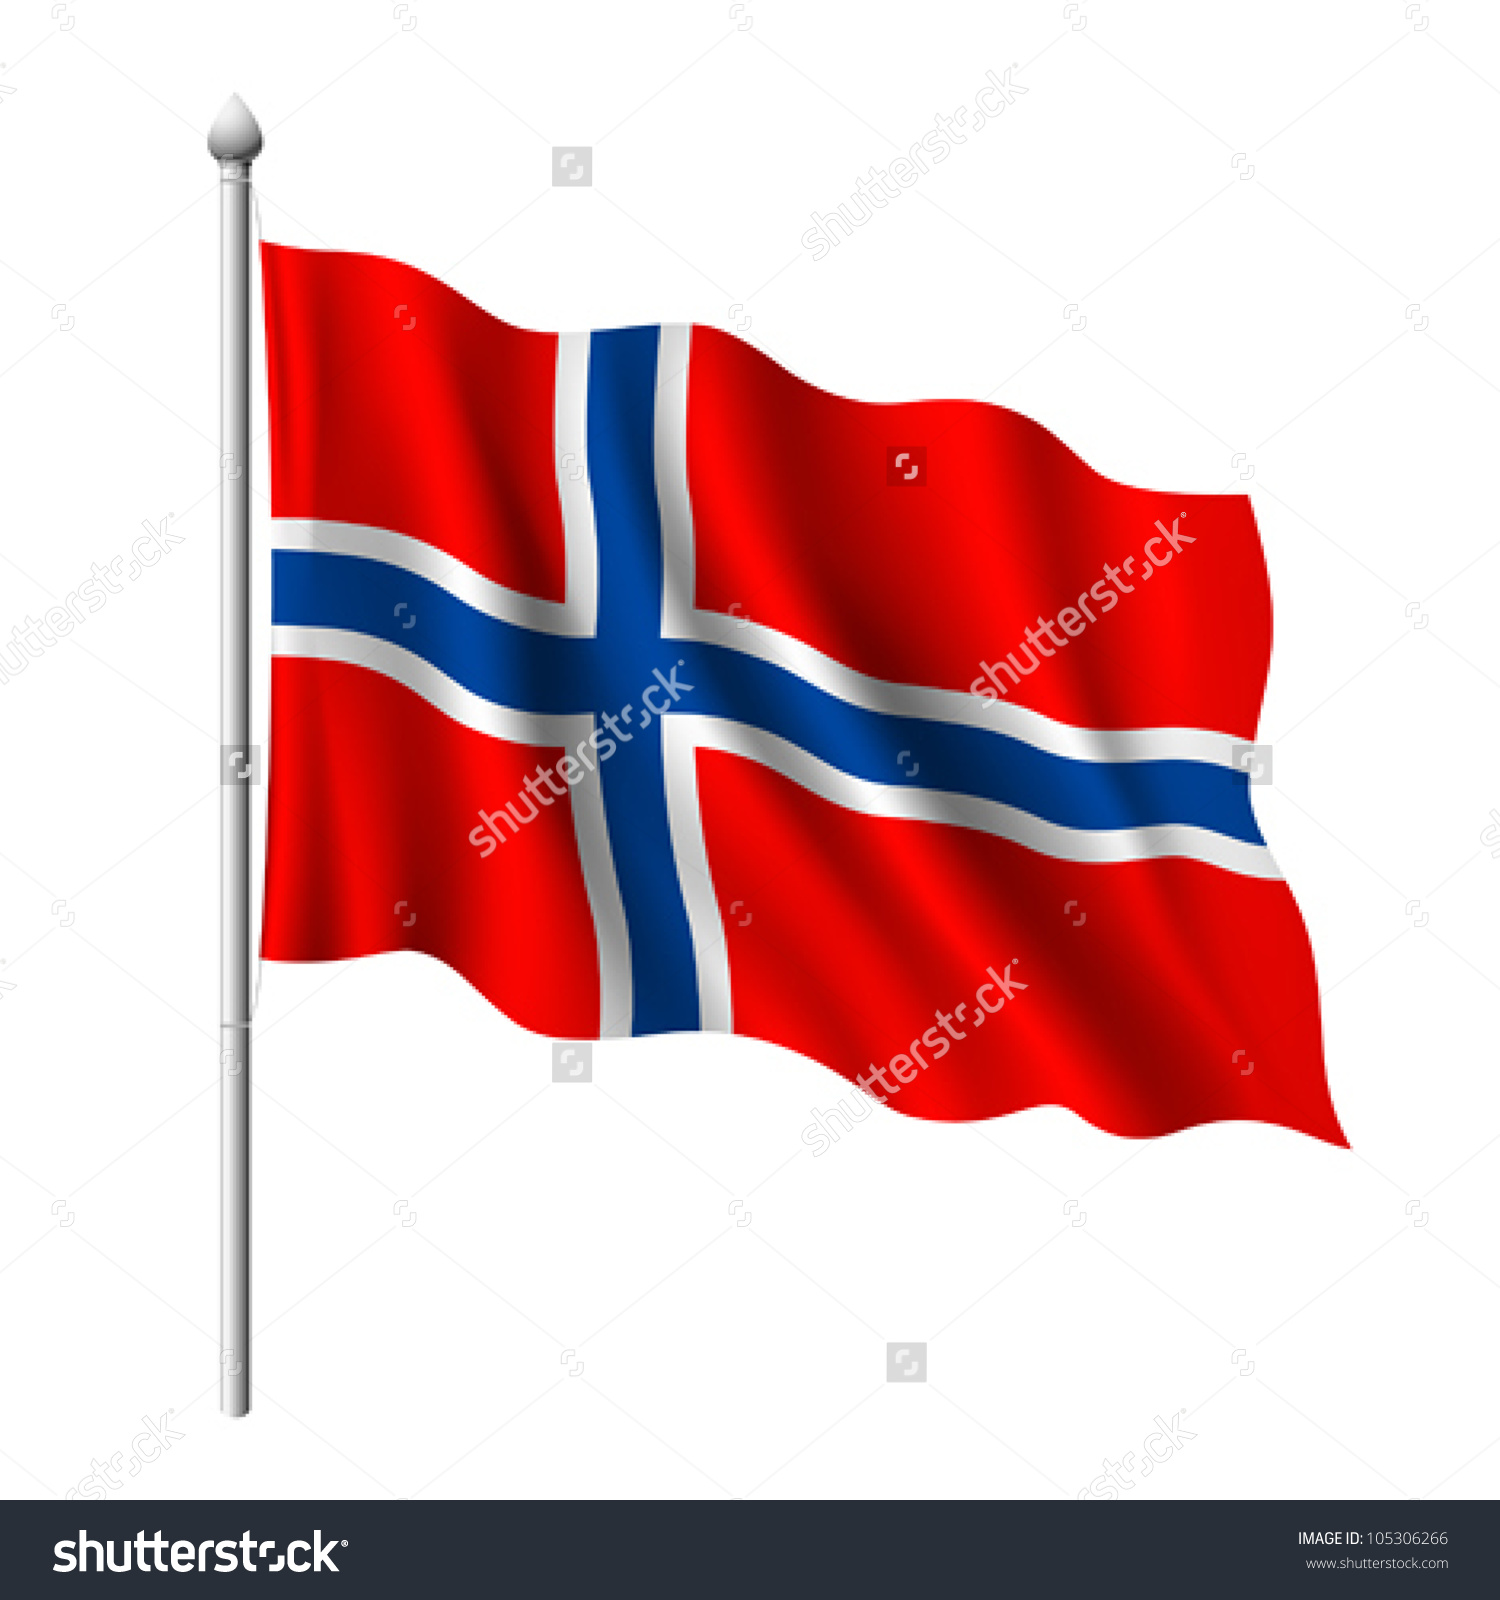 Nice wallpapers Flag Of Norway 1500x1600px